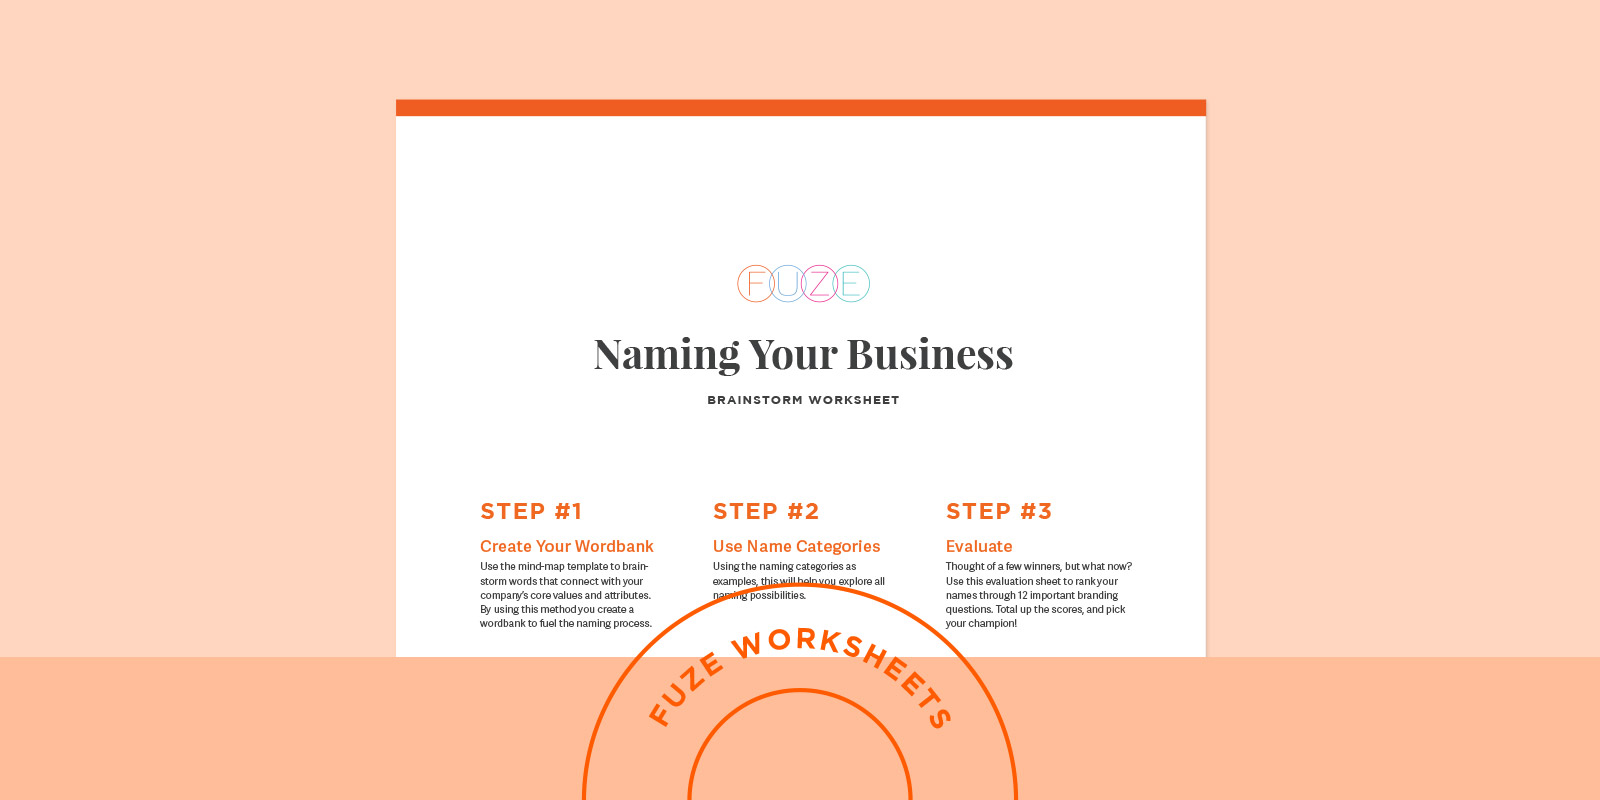 Fuze branding brainstorm worksheet tips for naming your business naming your business free brainstorm worksheet wajeb Image collections